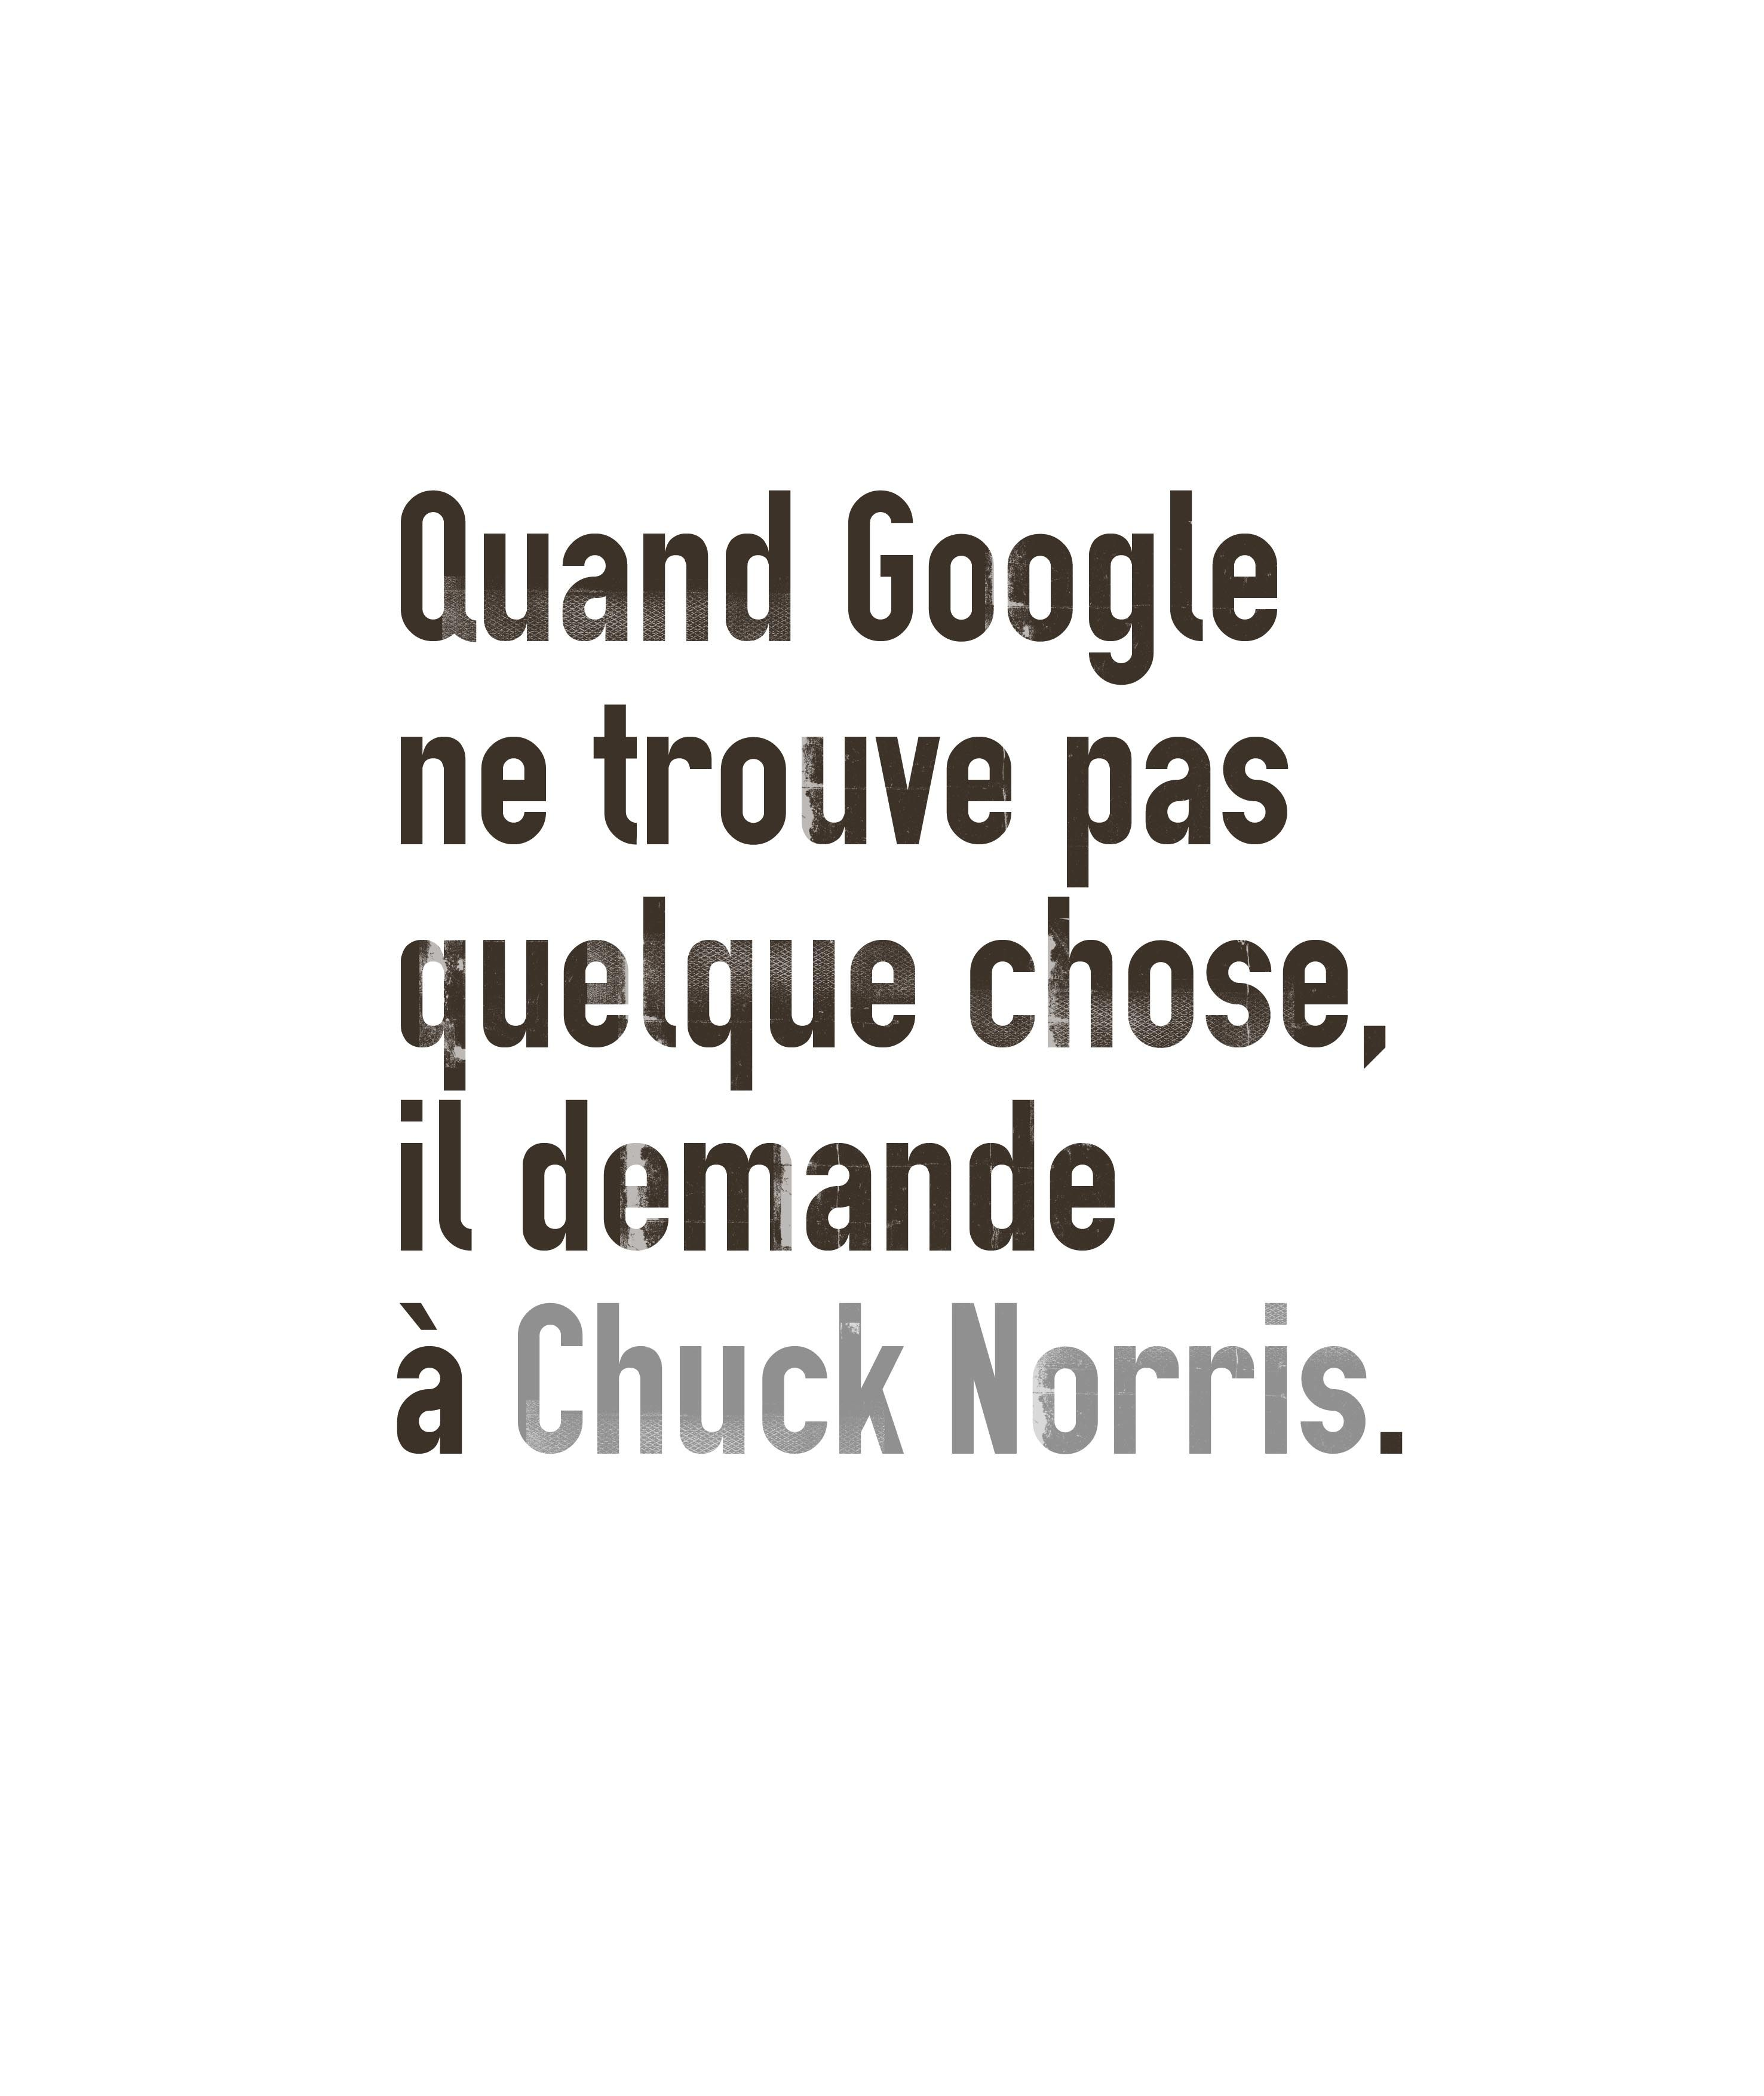 Chuck is obvious